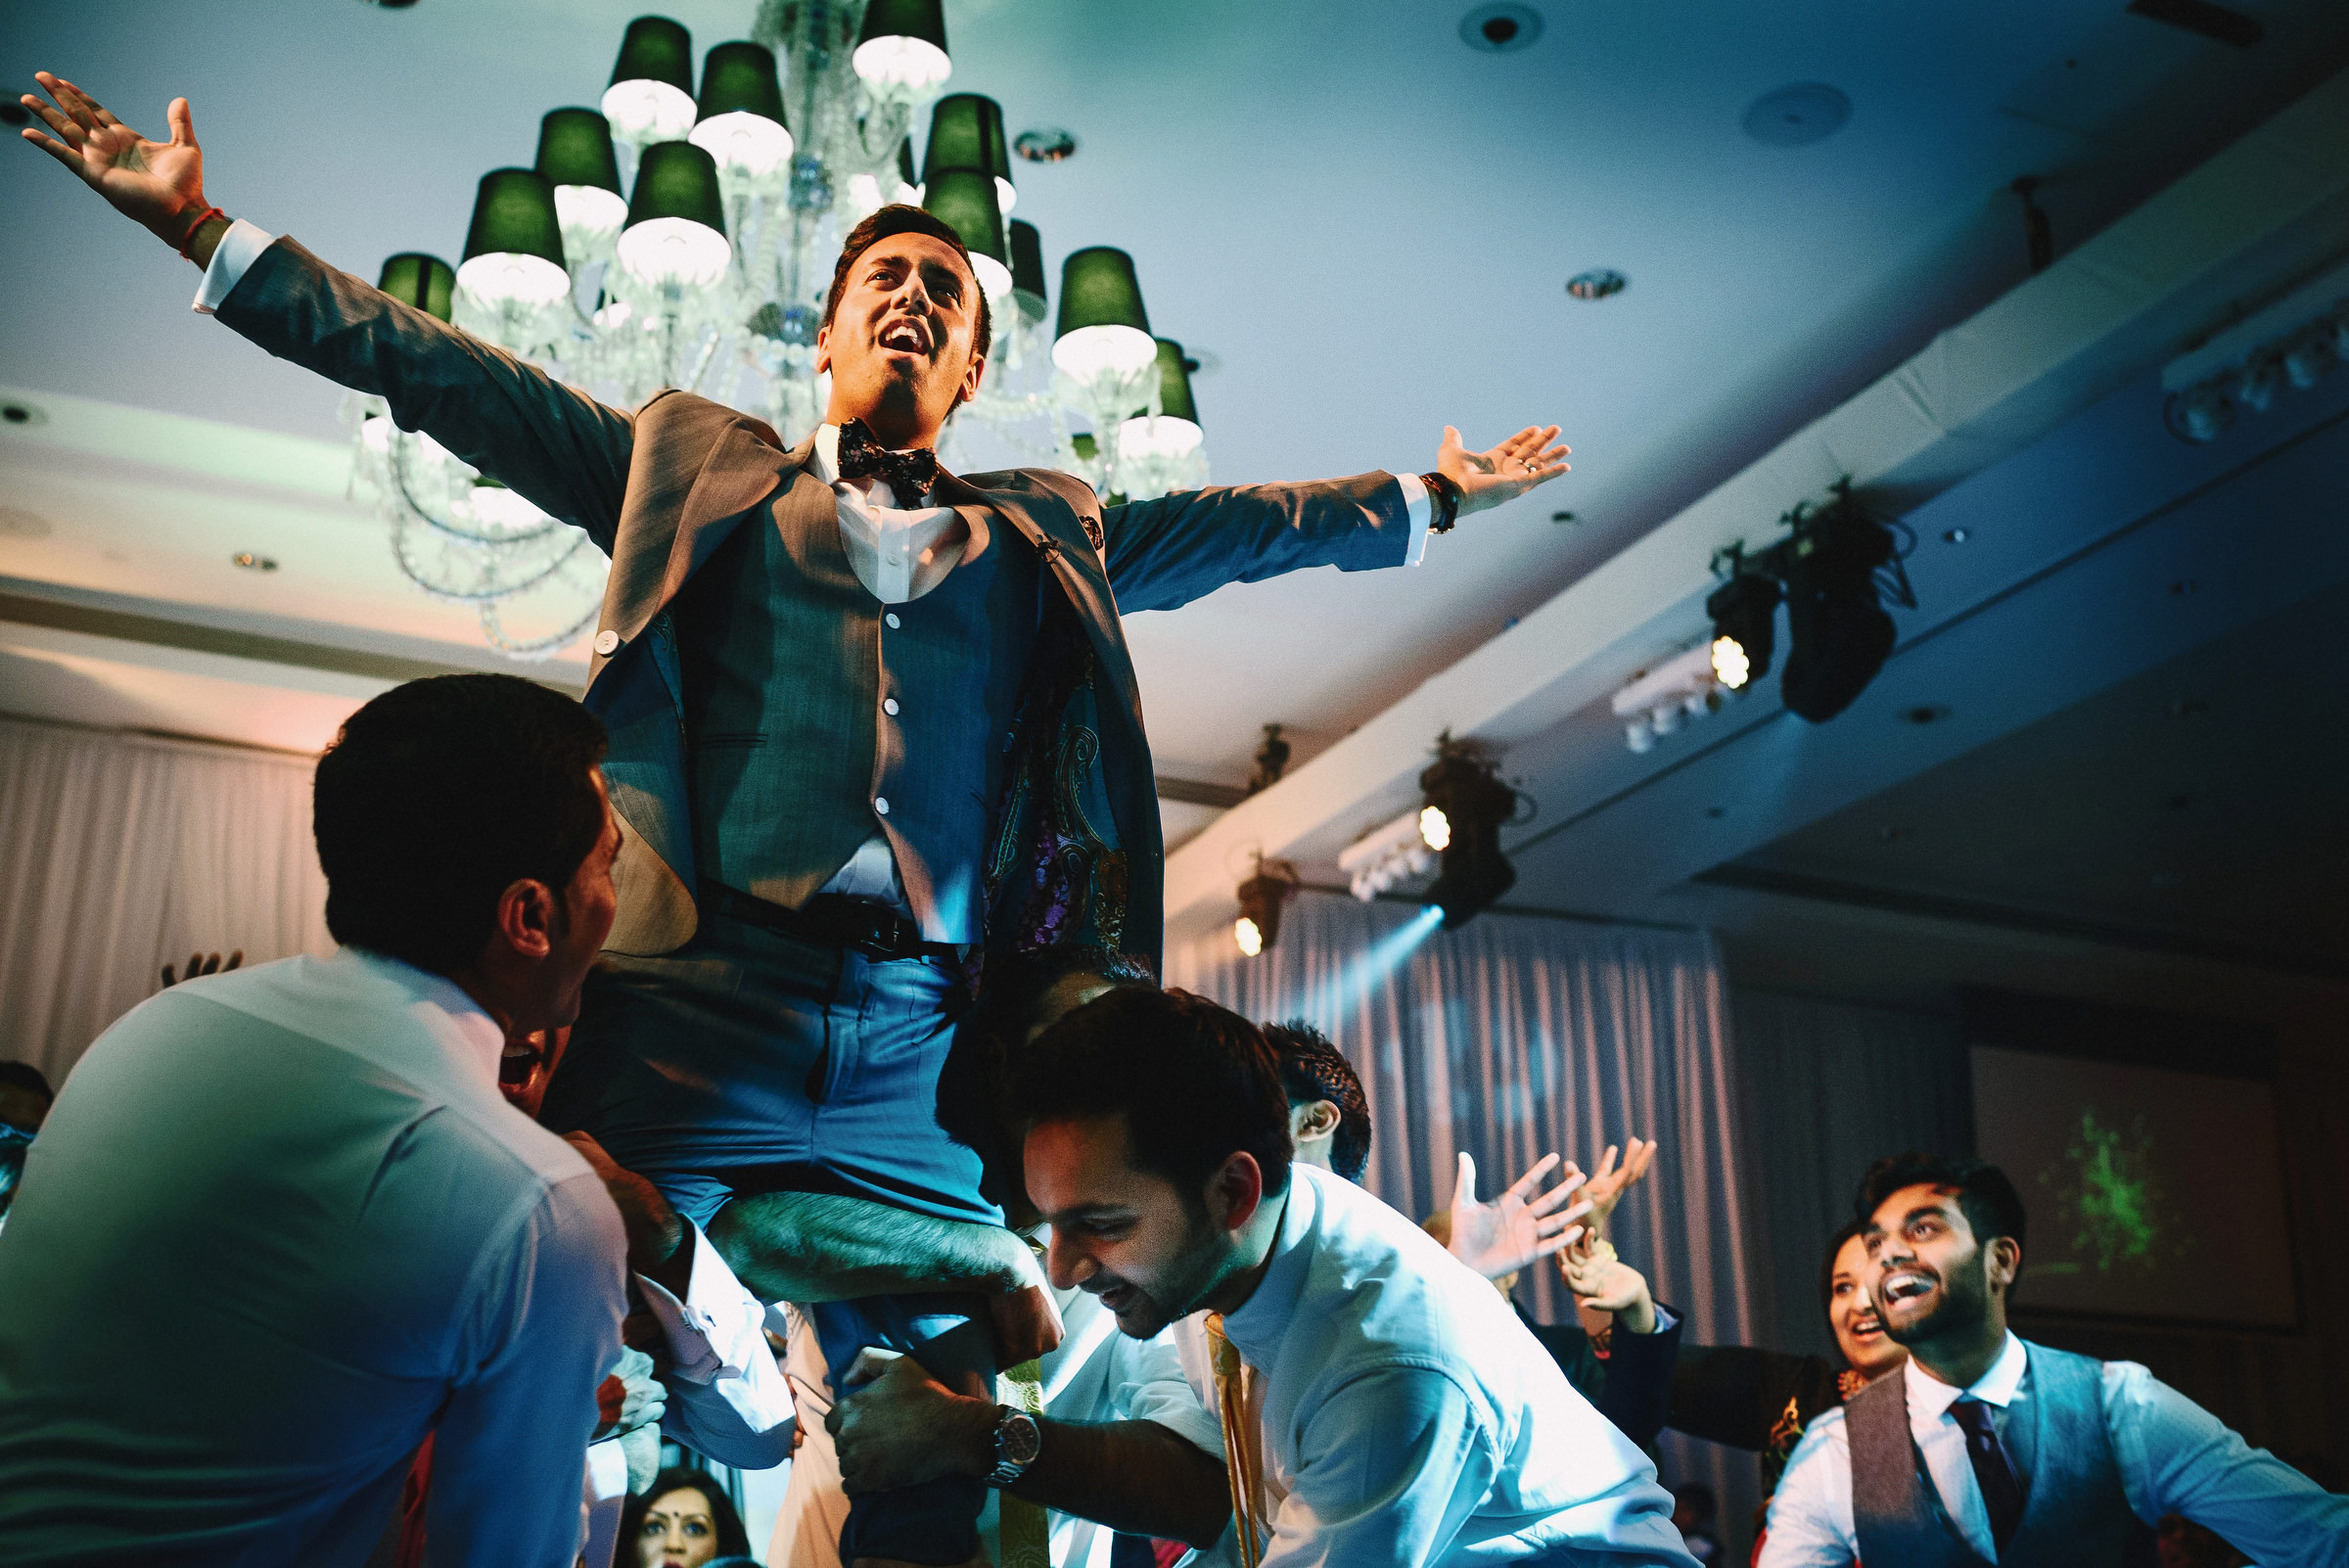 Groom held aloft - photo by Andy Gaines Photography